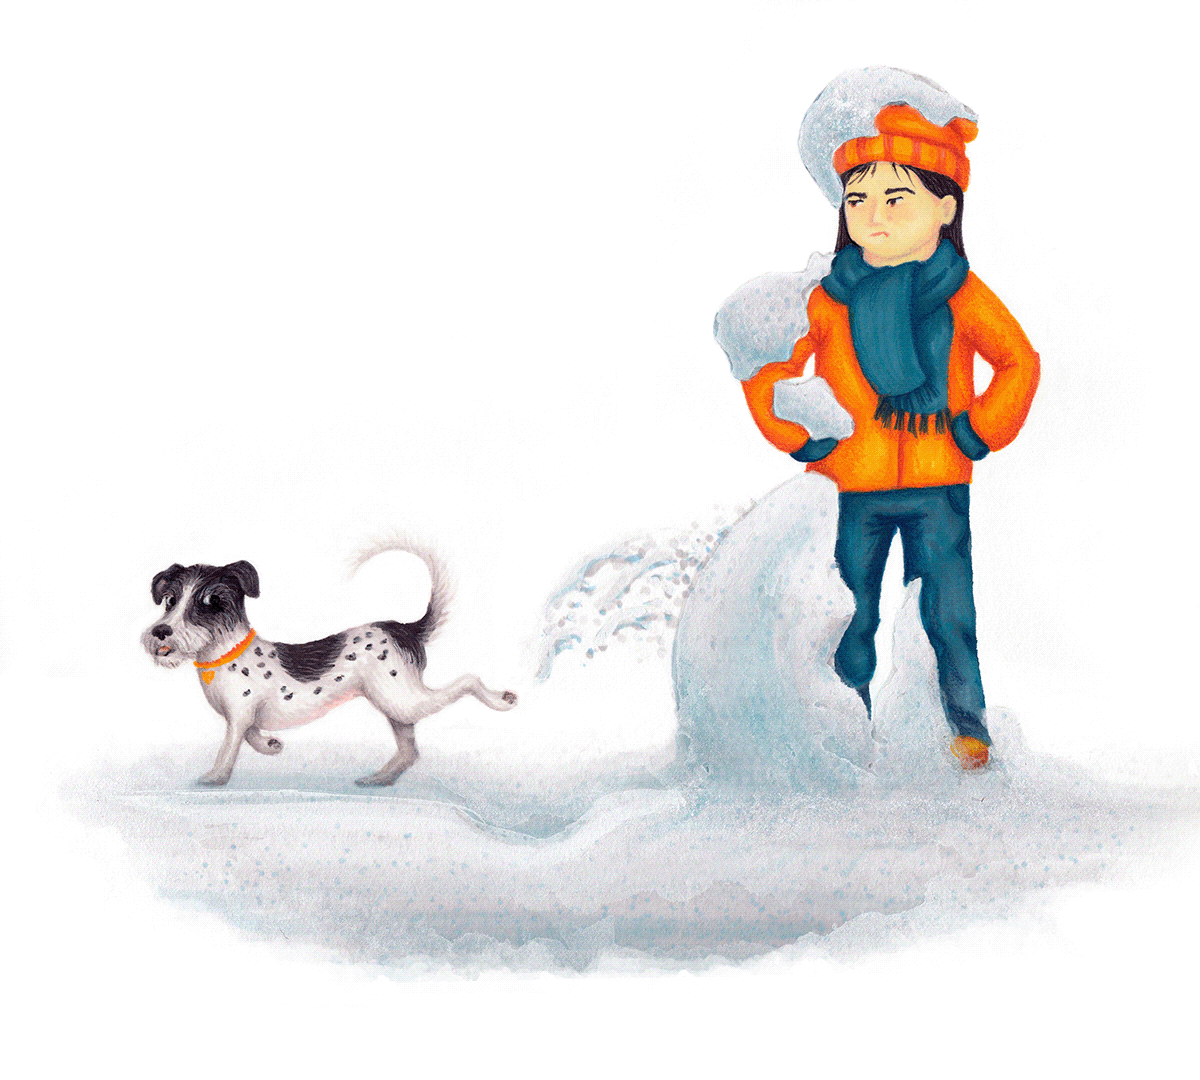 Image may contain: snow, dog and outdoor